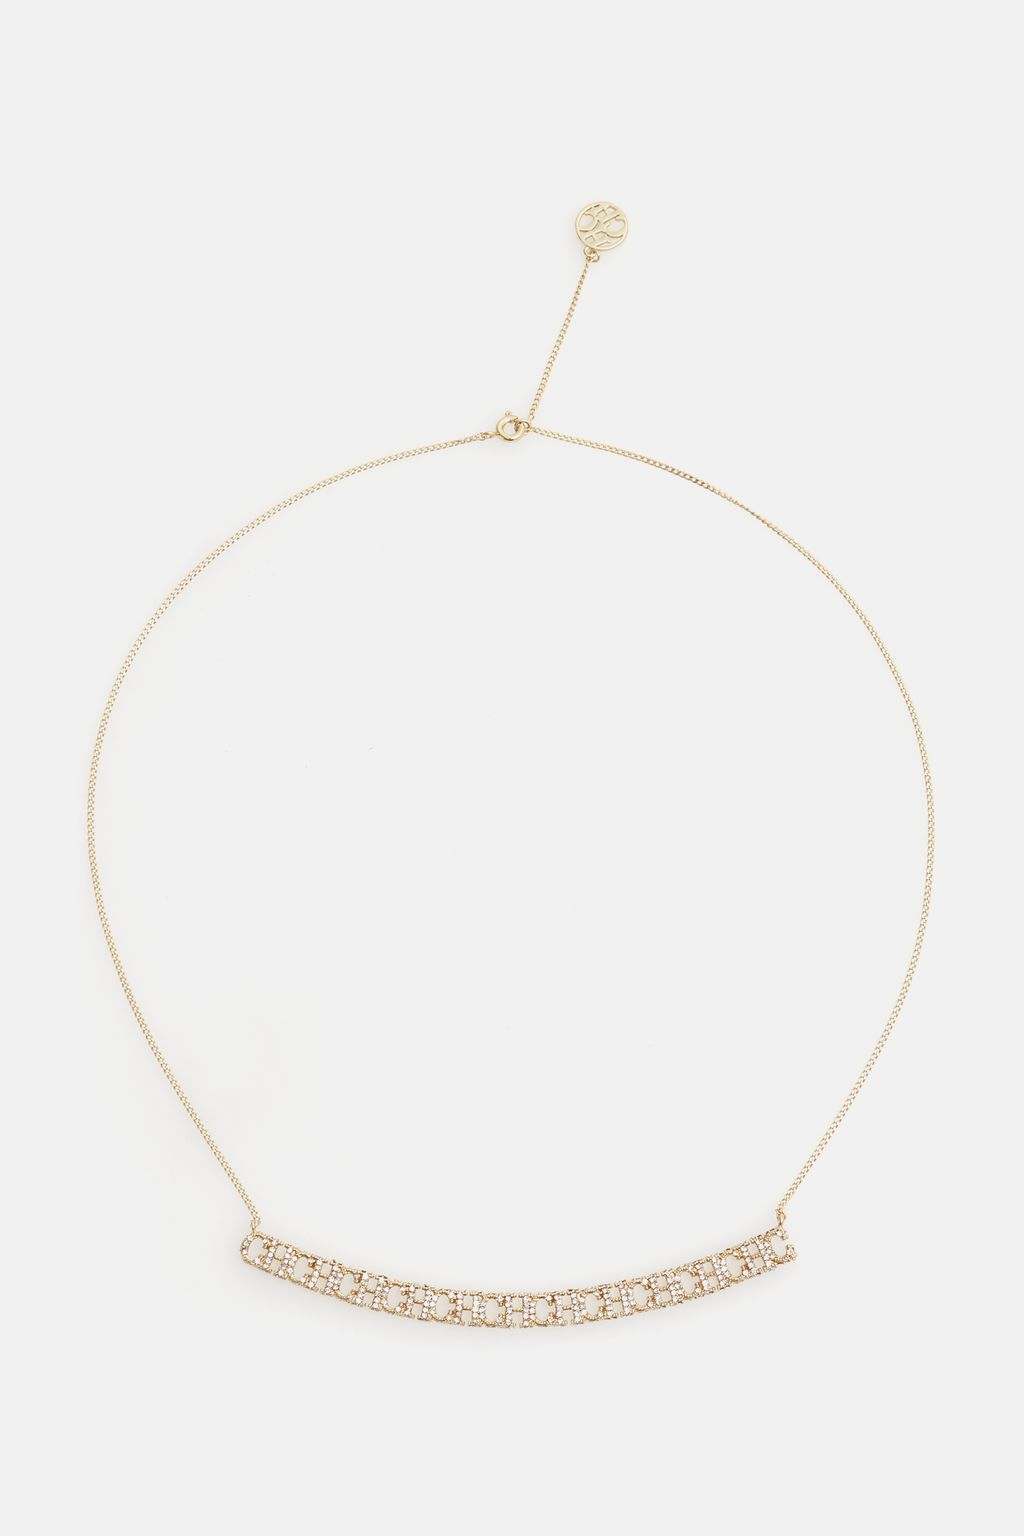 Between the Line necklace with crystals